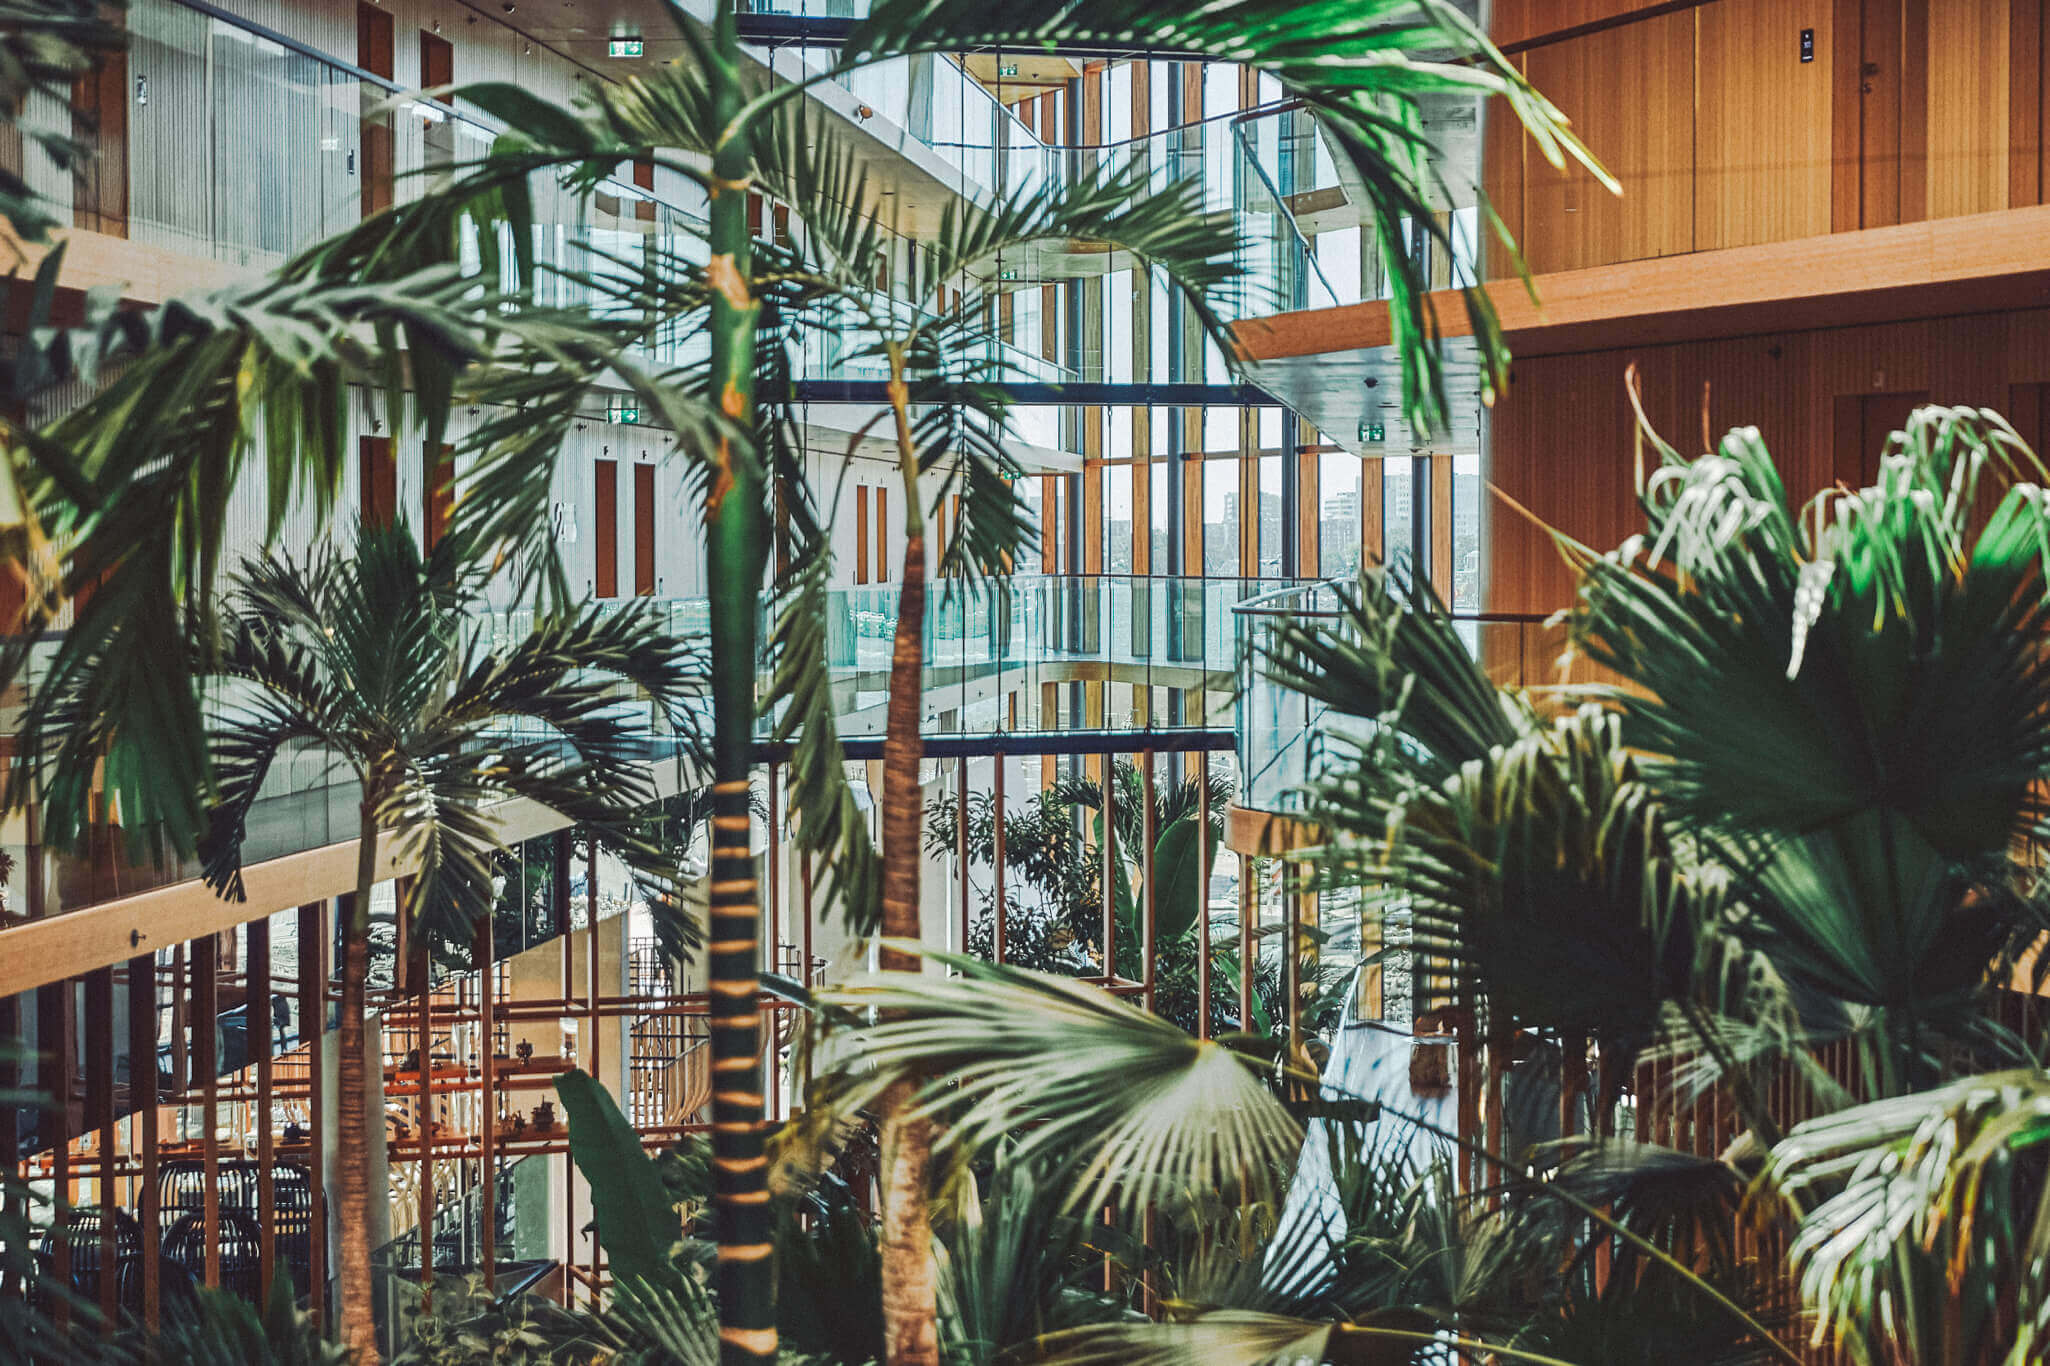 HOTELNACHT SUMMER EDITIE AMSTERDAM 2020: STAYCATION IN EIGEN LAND